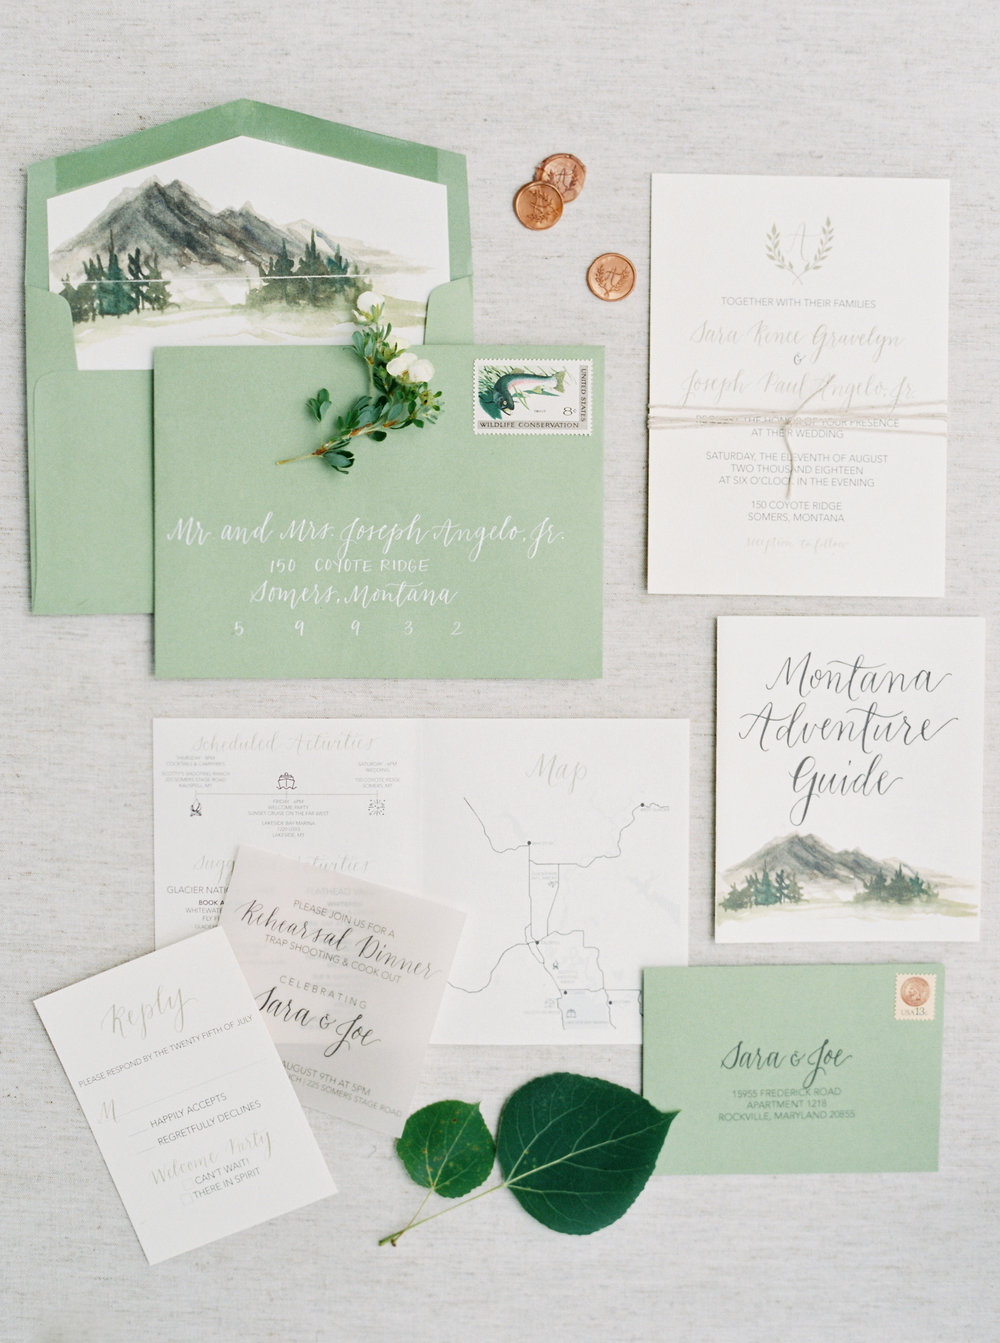 Full Wedding Stationery Design by Priscilla Anne